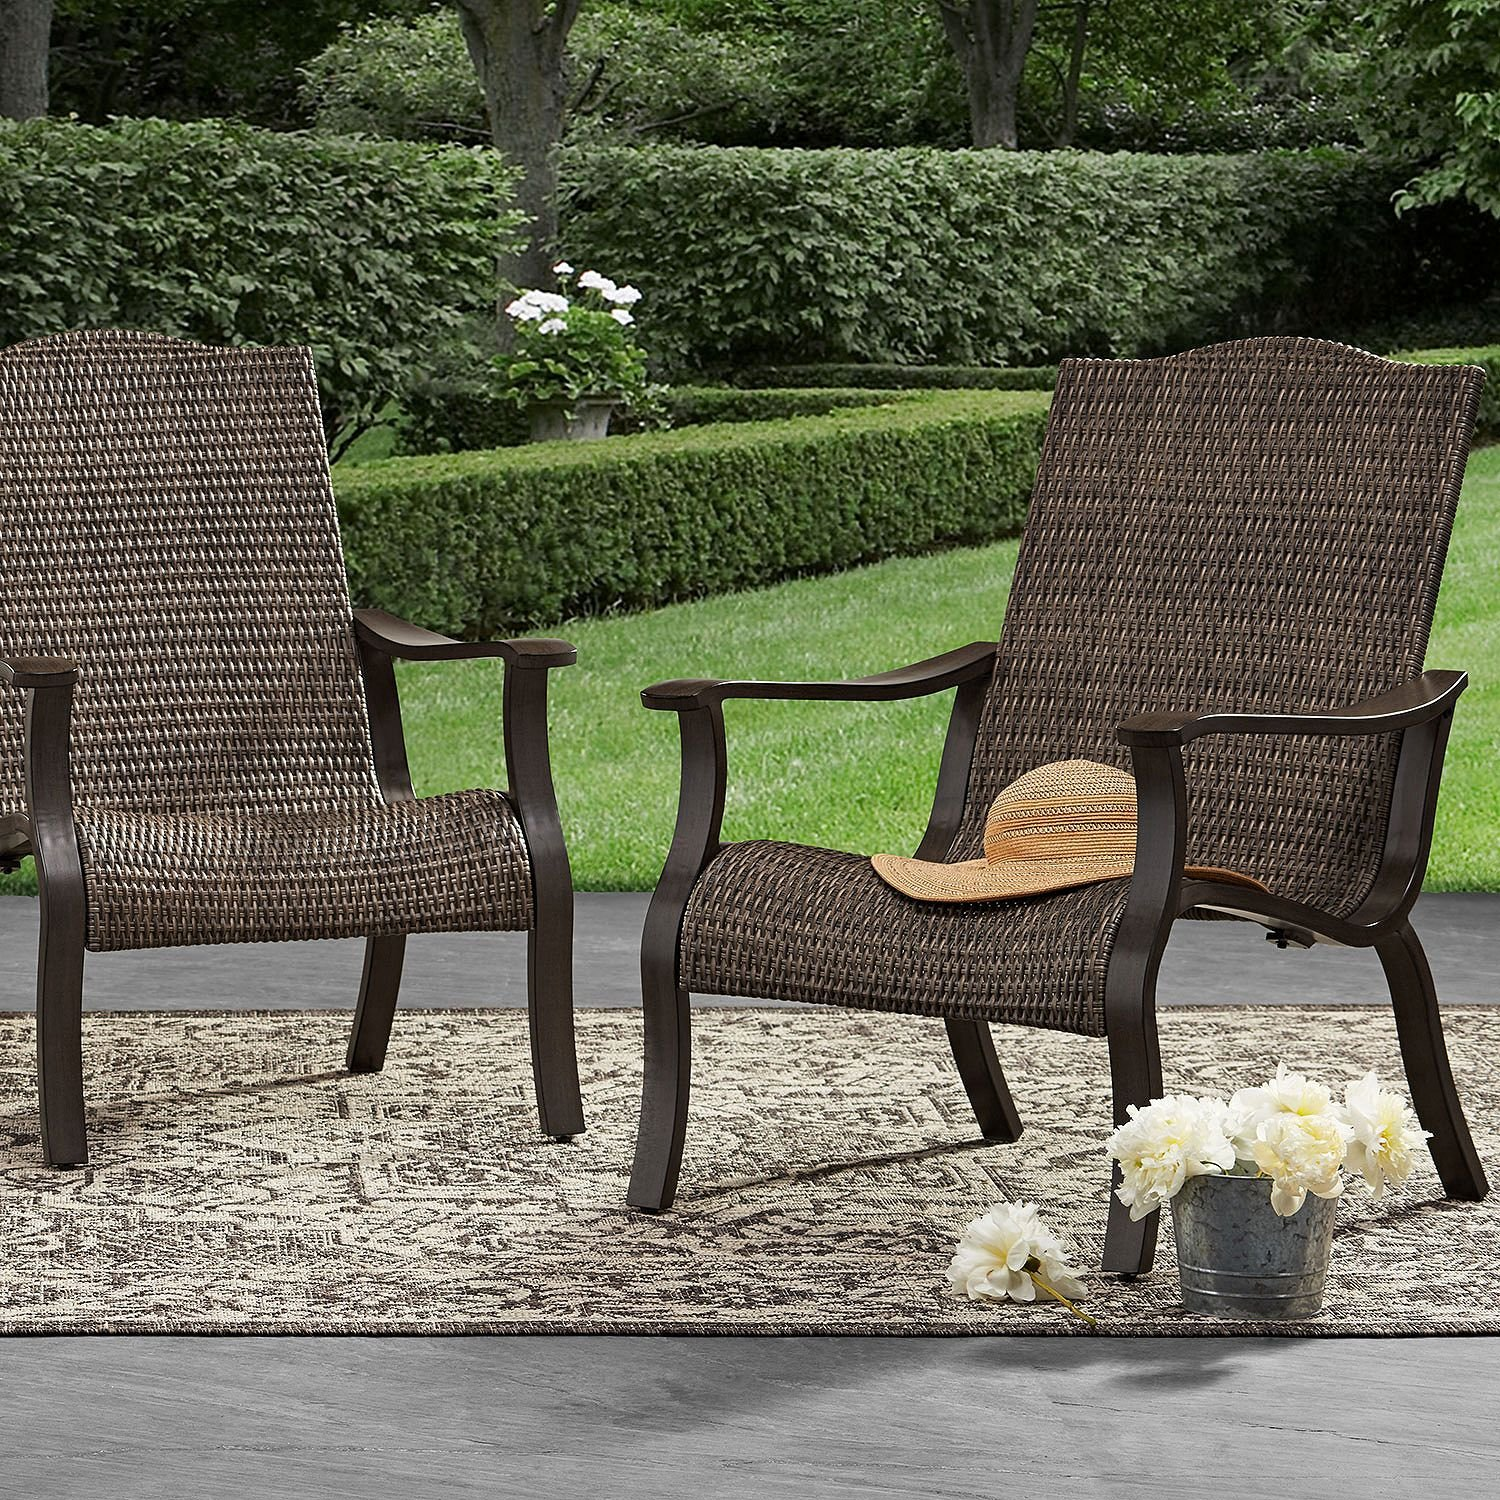 Amazon com members mark adirondack agio woven side chair lounges daybeds chairs 2 pack garden outdoor